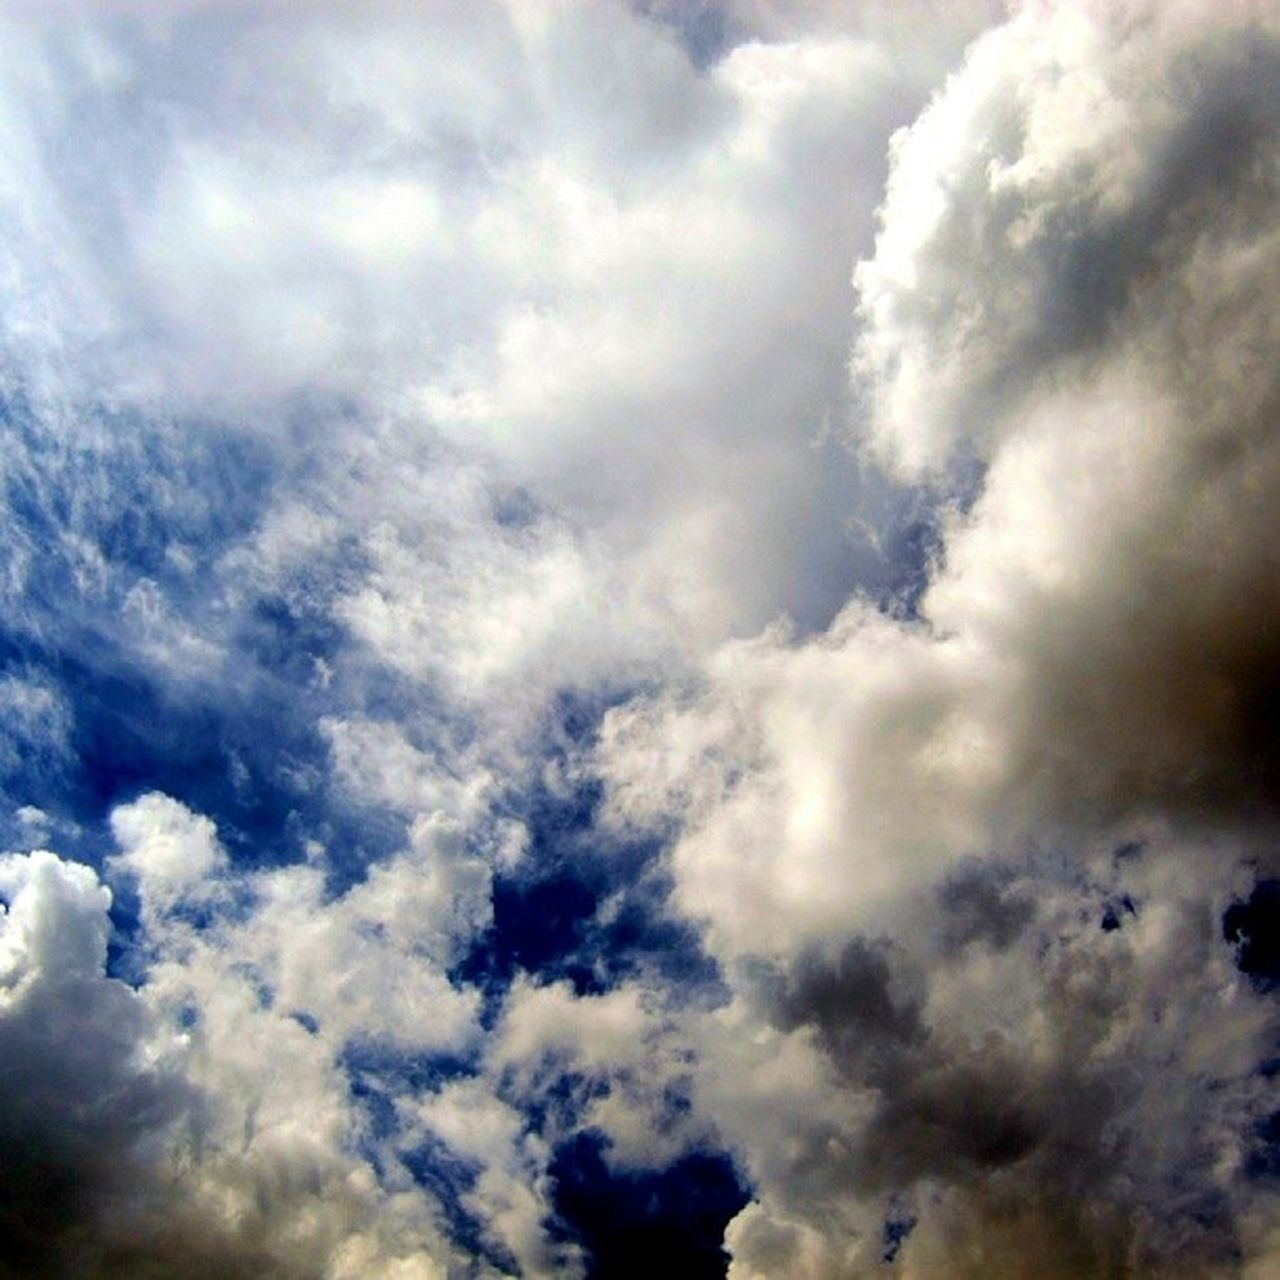 cloud - sky, beauty in nature, cloudscape, backgrounds, atmospheric mood, nature, sky, majestic, full frame, weather, sky only, scenics, tranquility, low angle view, heaven, no people, tranquil scene, blue, storm cloud, outdoors, day